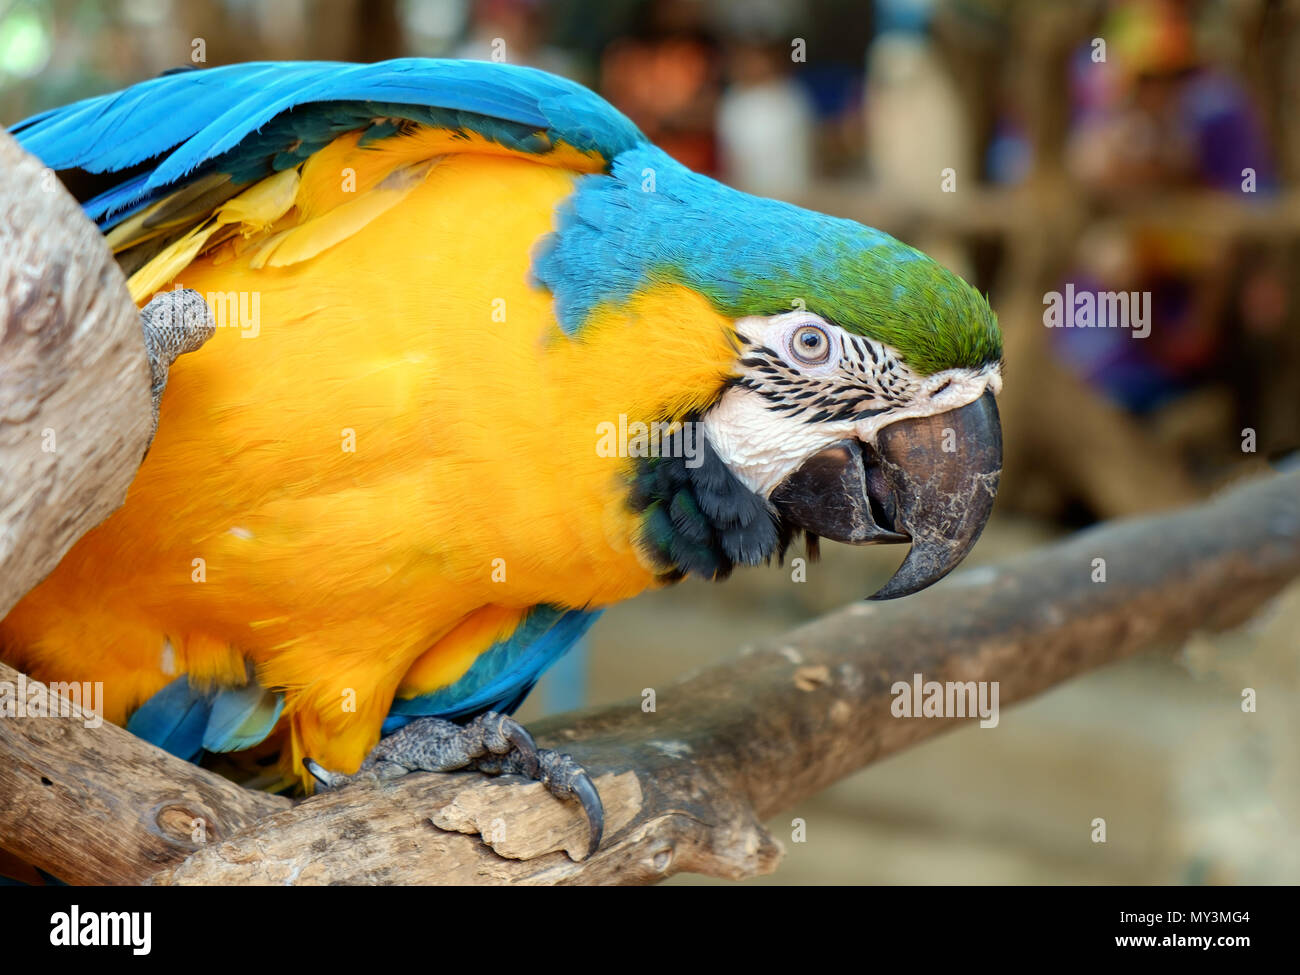 View of colorful macaw parrot. Stock Photo